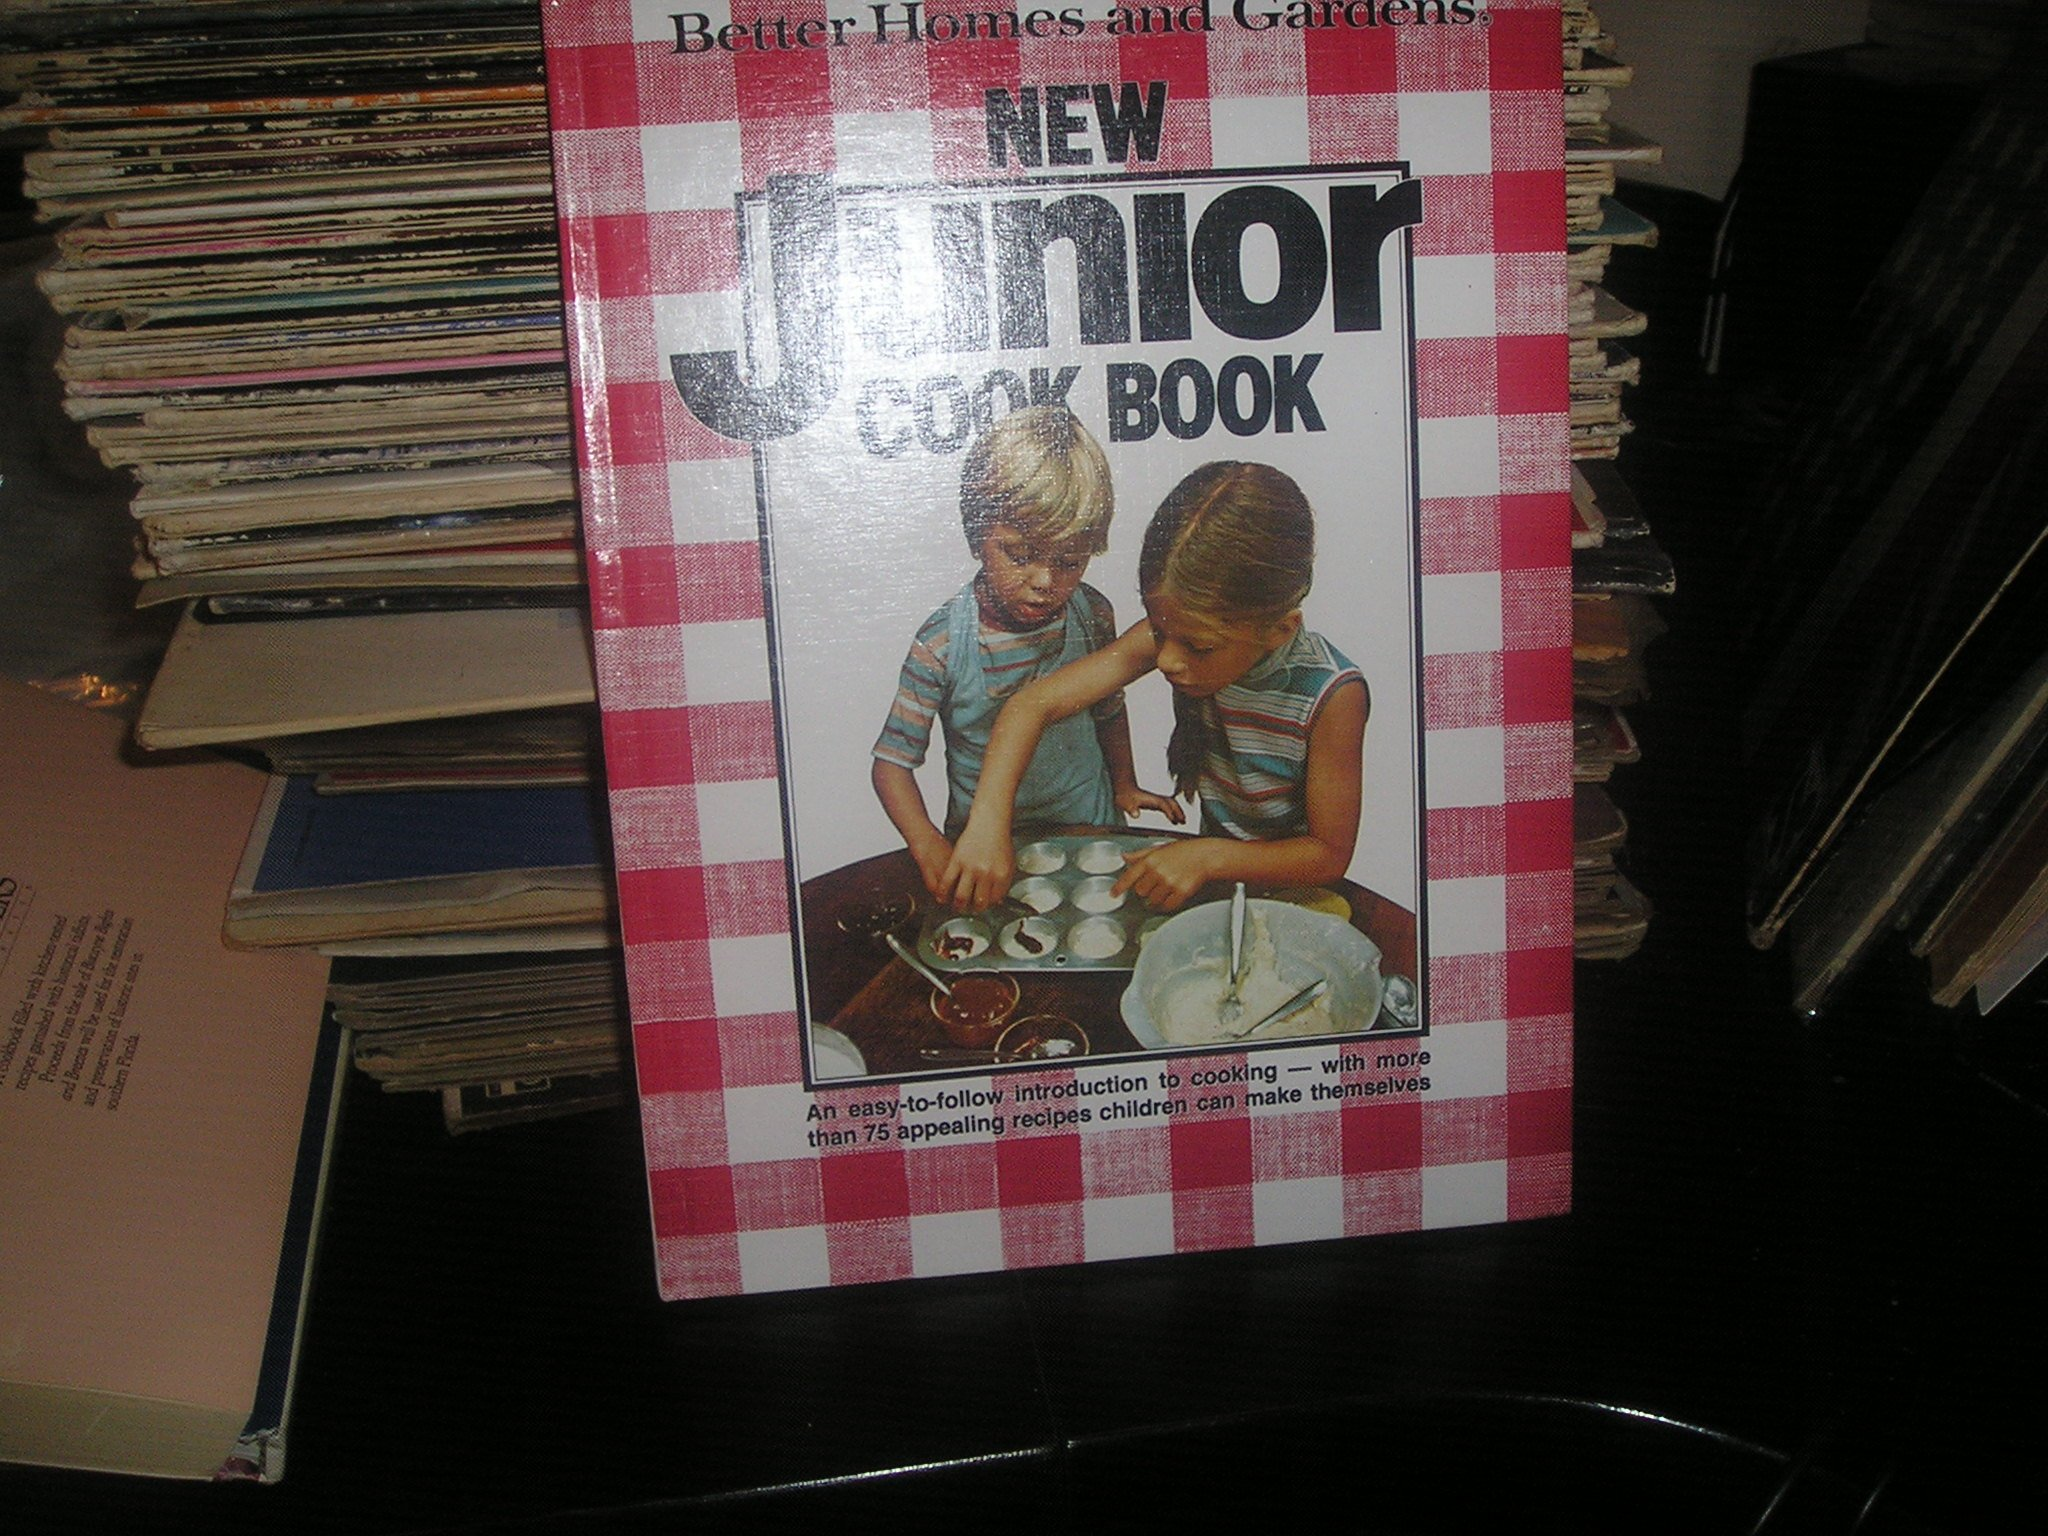 Better Homes and Gardens New Junior Cook Book: Flora Szatkowski, Diane Nelson: 9780696004056: Amazon.com: Books